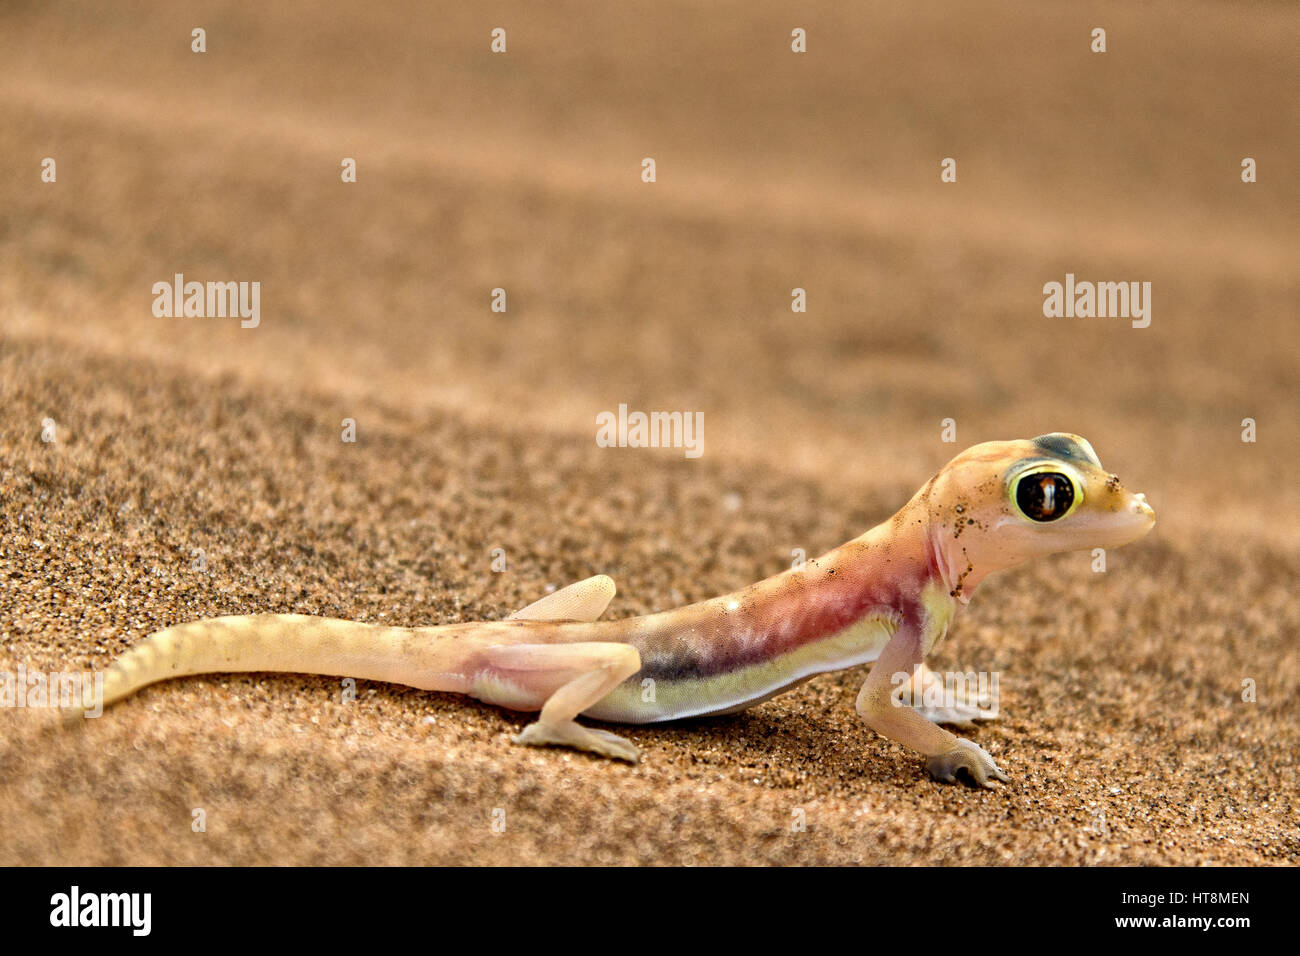 Cheeky and colourful Palmato Gecko on the sands of the Namib Desert  -  side view Stock Photo